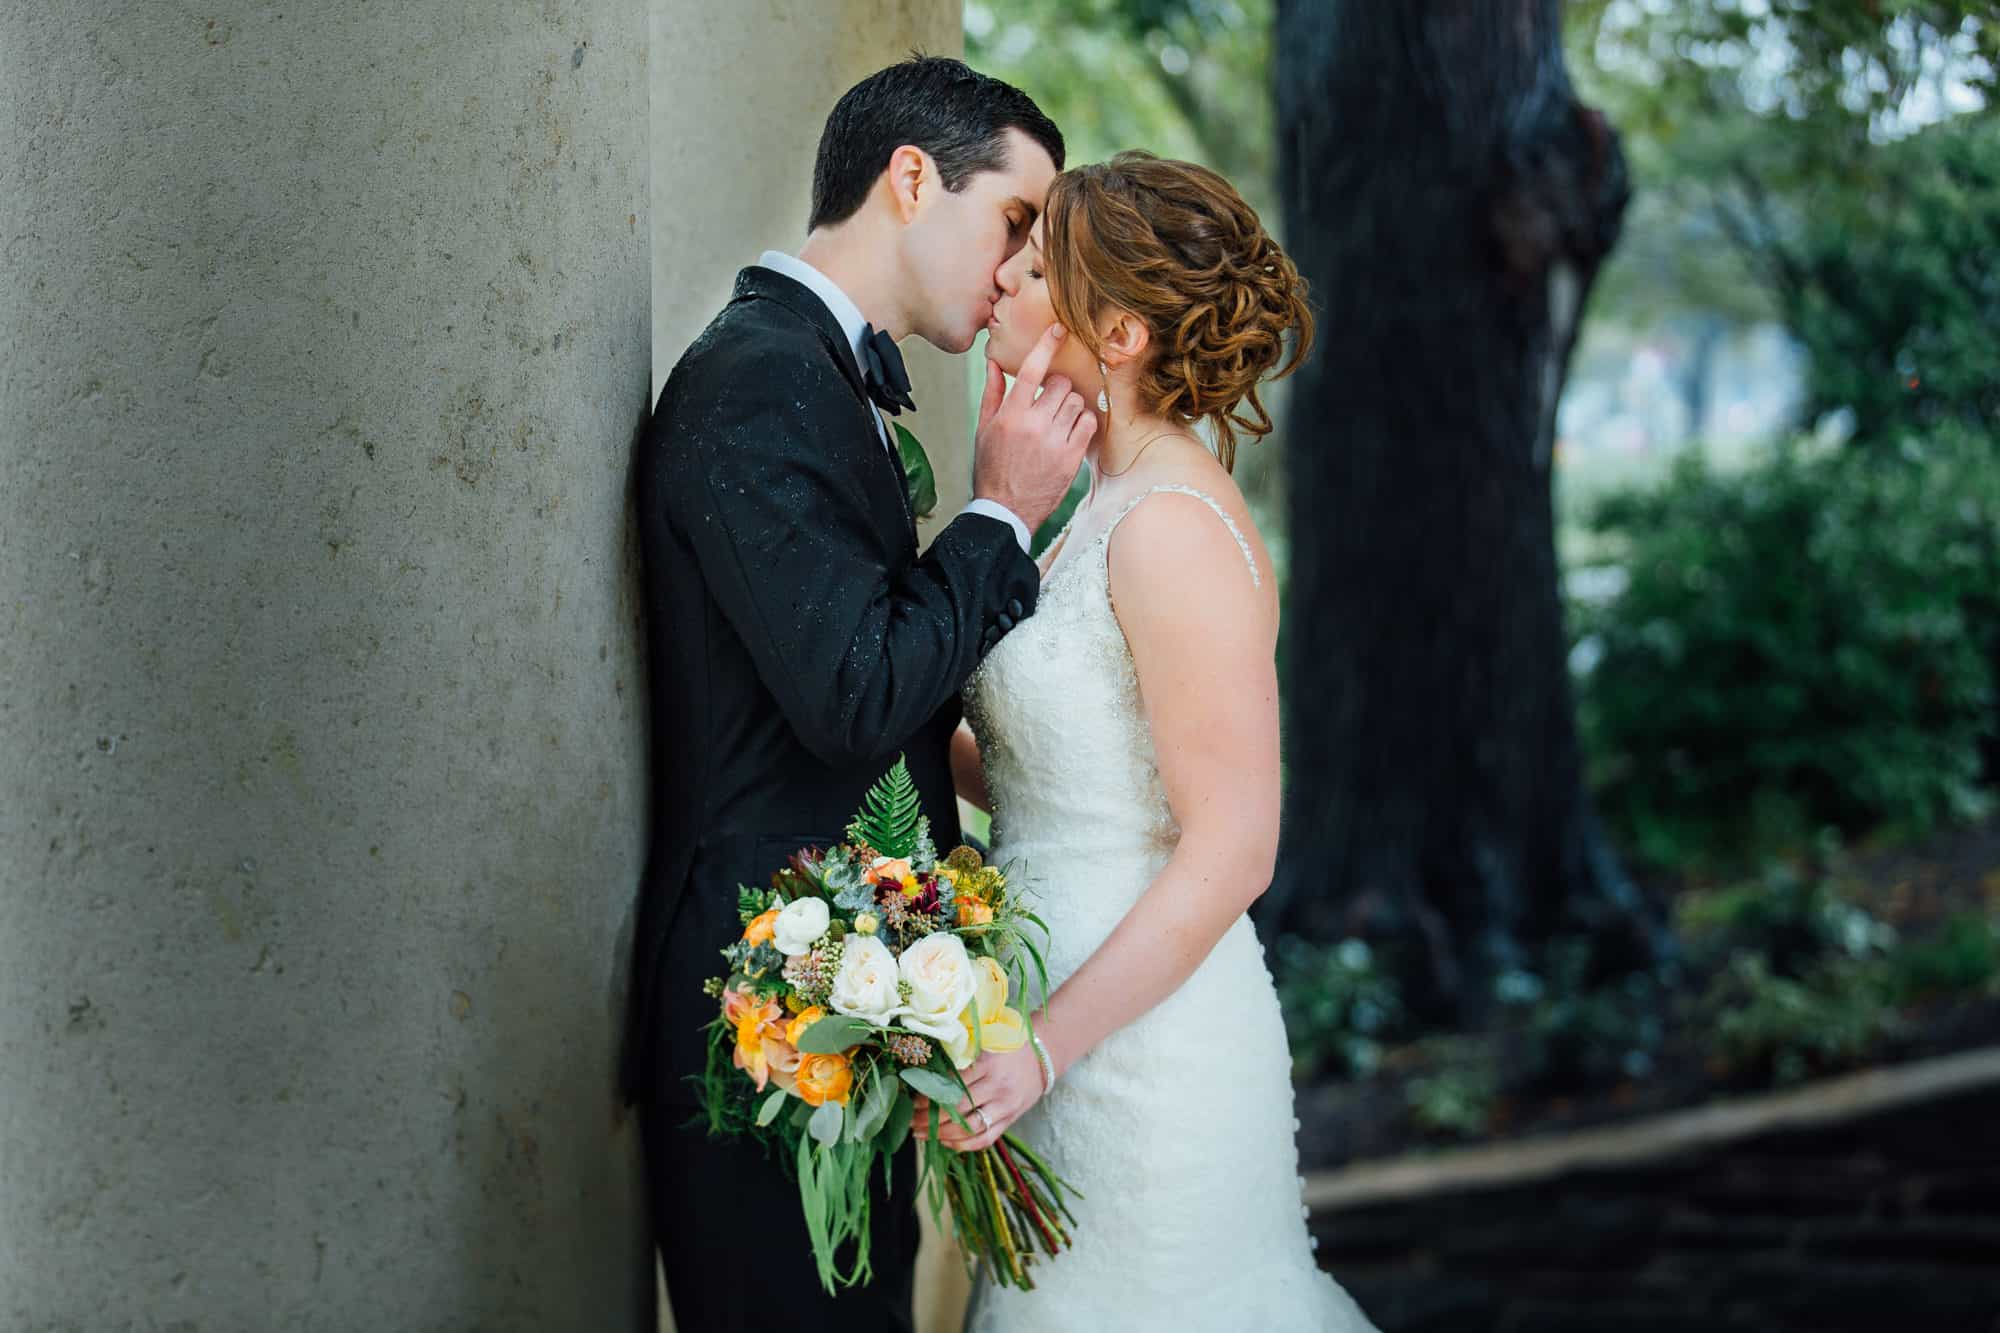 Bride and groom kiss at the Rodin Museum